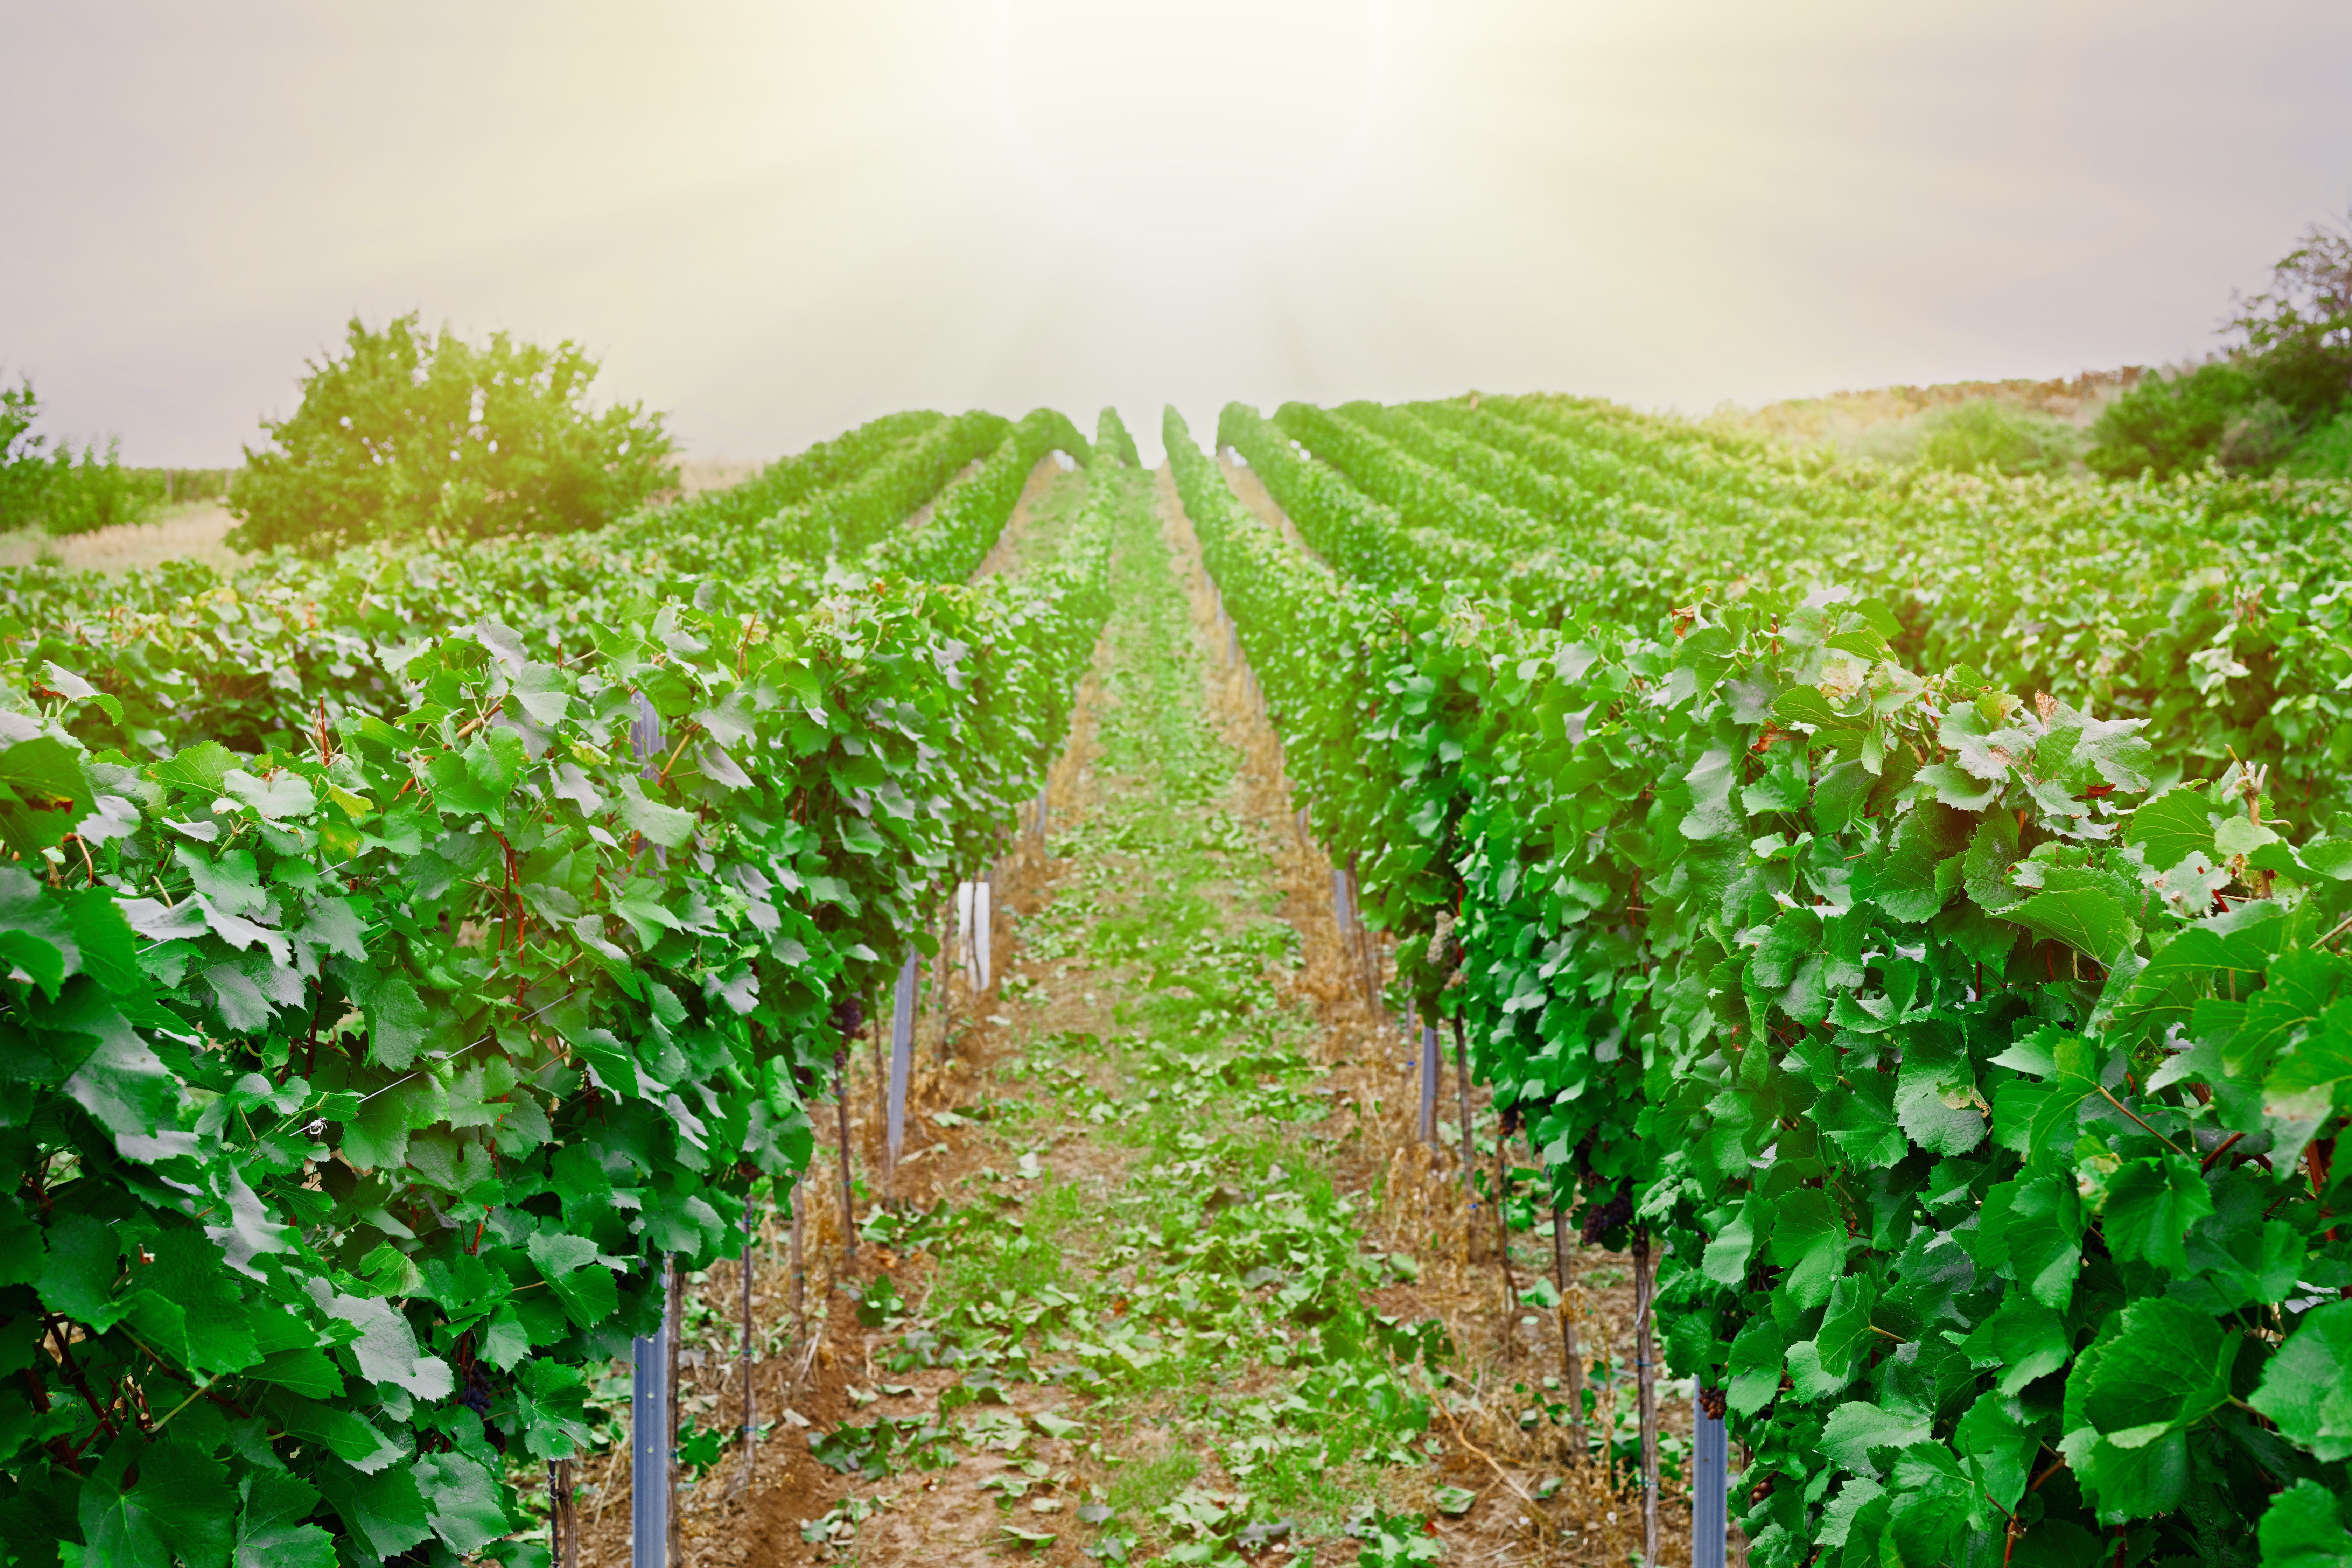 vineyard with ripe grapes in countryside